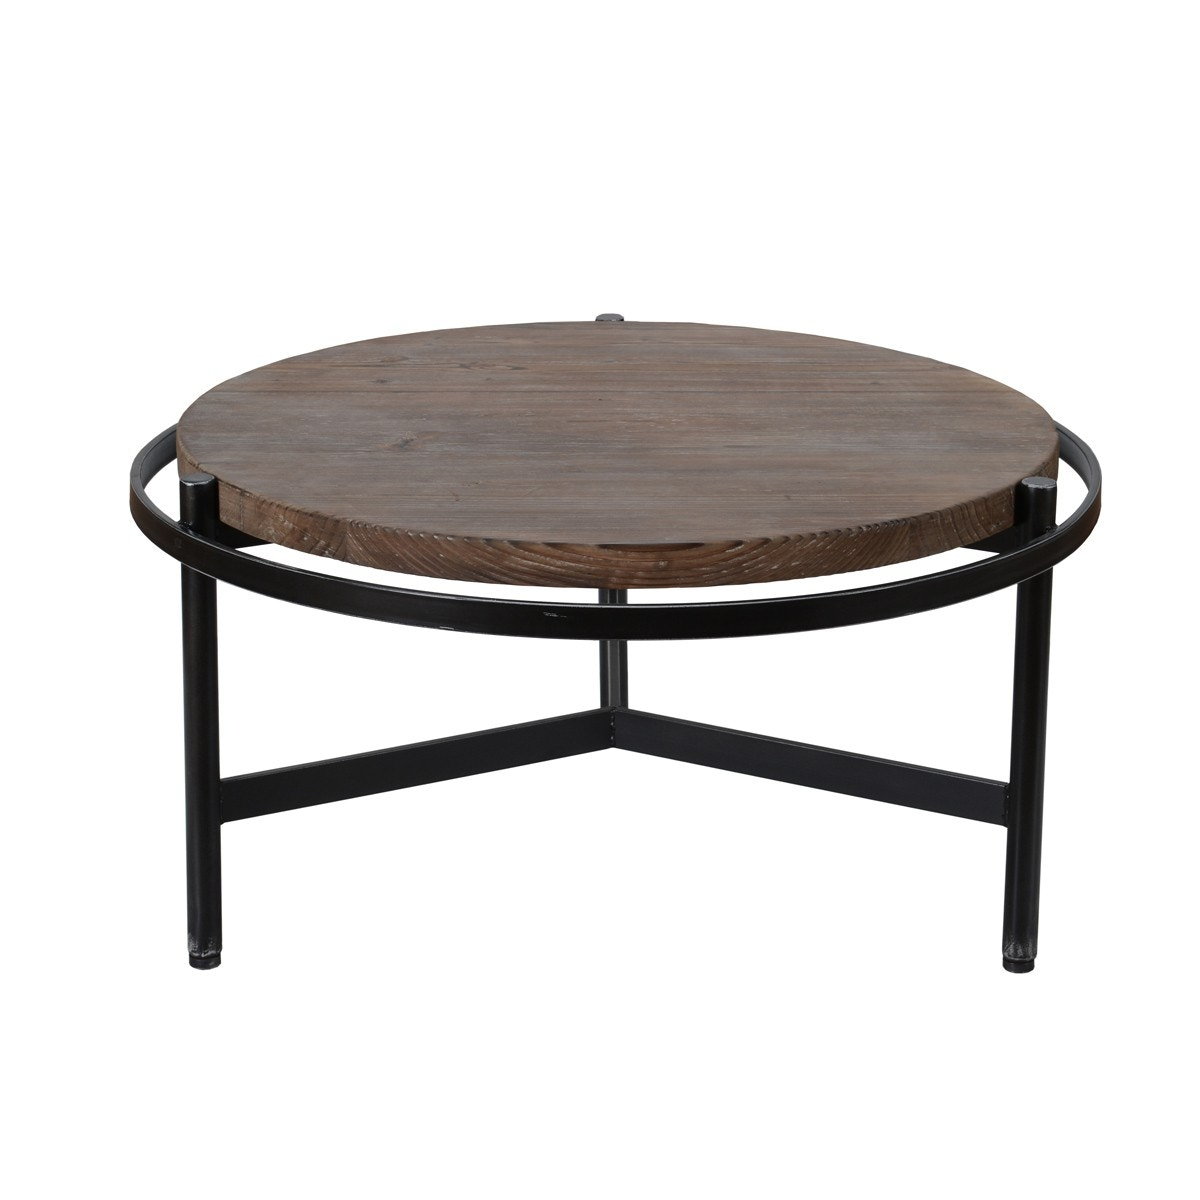 Classic Home Zenith Coffee Table 36in 51030381 Portland OR Key